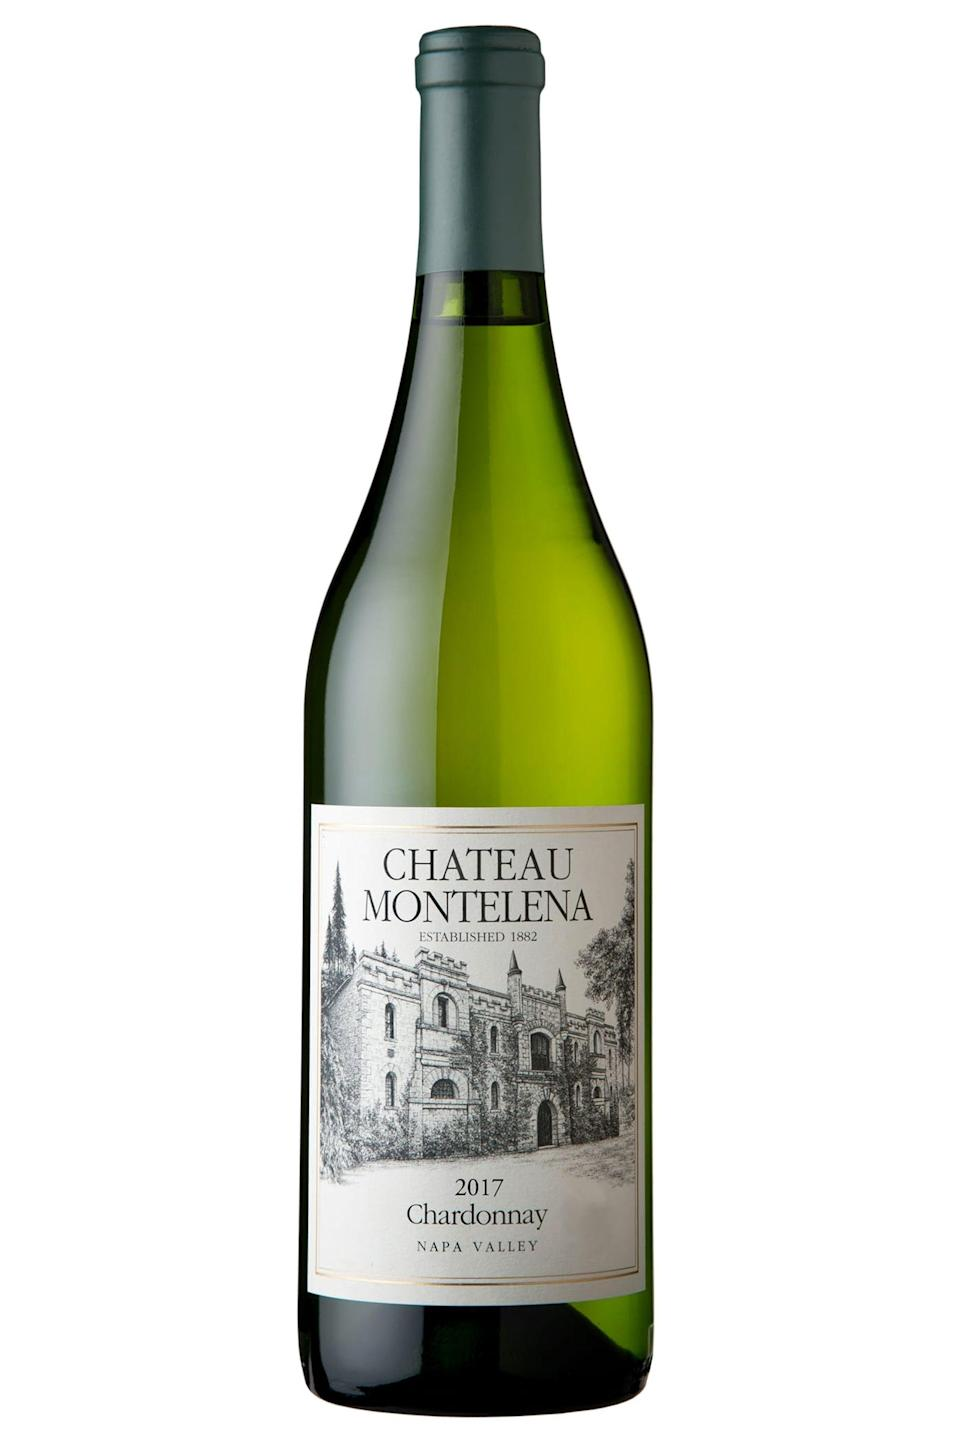 """<p>wine.com</p><p><strong>$49.99</strong></p><p><a href=""""https://go.redirectingat.com?id=74968X1596630&url=https%3A%2F%2Fwww.wine.com%2Fproduct%2Fchateau-montelena-napa-valley-chardonnay-2017%2F571795&sref=https%3A%2F%2Fwww.redbookmag.com%2Ffood-recipes%2Fg35180620%2Fbest-valentines-day-wine%2F"""" rel=""""nofollow noopener"""" target=""""_blank"""" data-ylk=""""slk:Shop Now"""" class=""""link rapid-noclick-resp"""">Shop Now</a></p><p>What better to celebrate a romance for the history books than the chardonnay that put Napa Valley on the map? Filled with the flavors of ripe core fruit and a whiff of floral, its creaminess would be a lovely foil to Valentine's confections. <br></p>"""